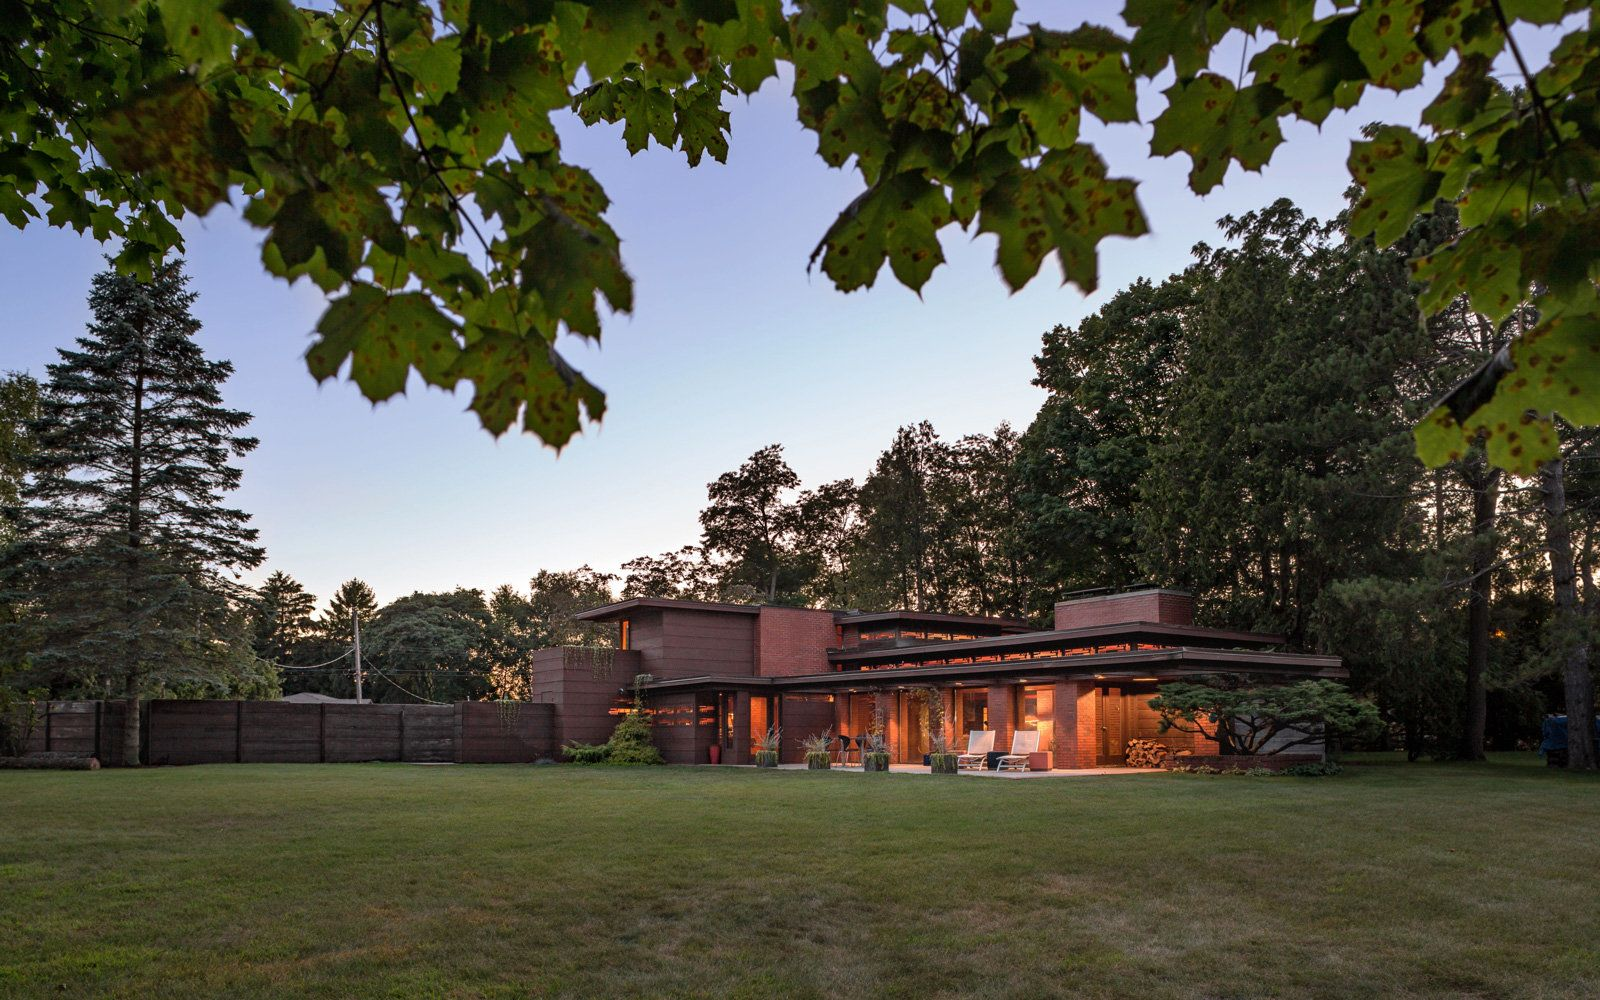 There S A Frank Lloyd Wright Home In This Tiny Wisconsin Town